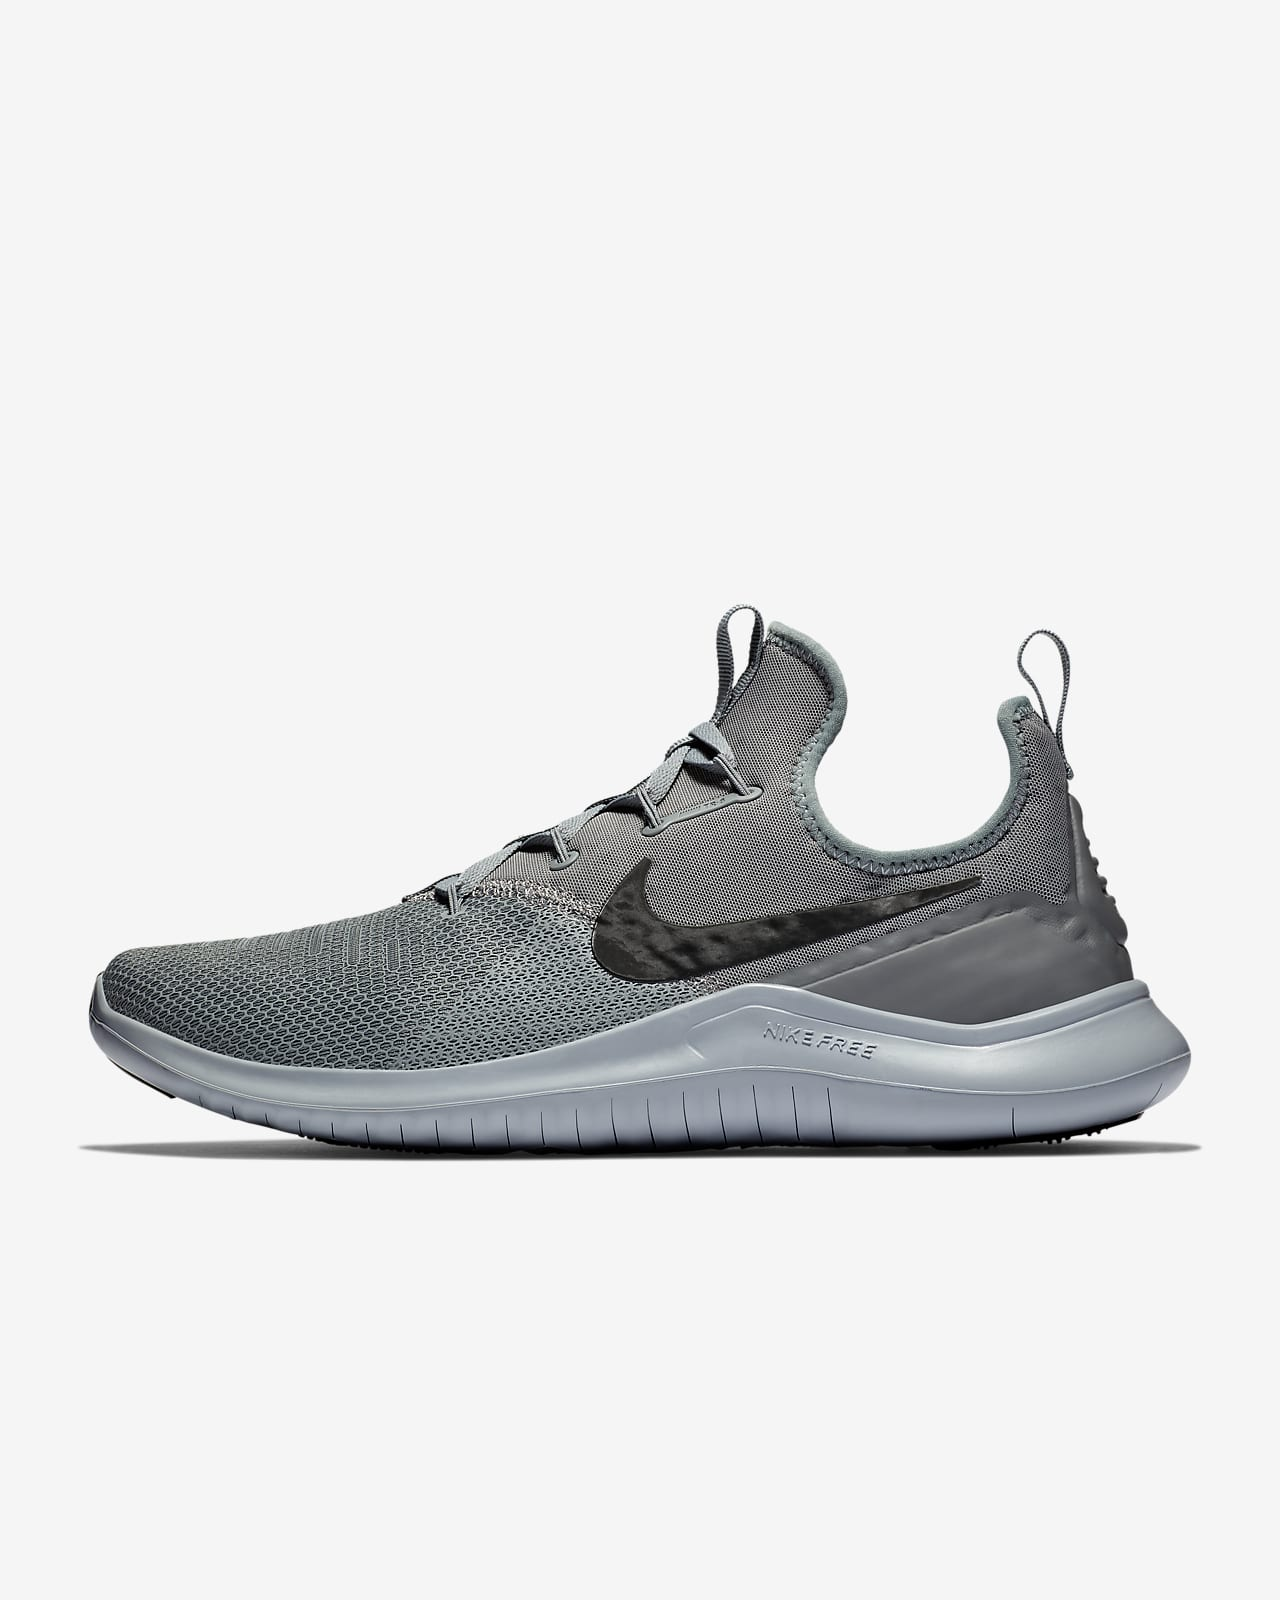 nike training free tr flyknit trainers in grey and blue